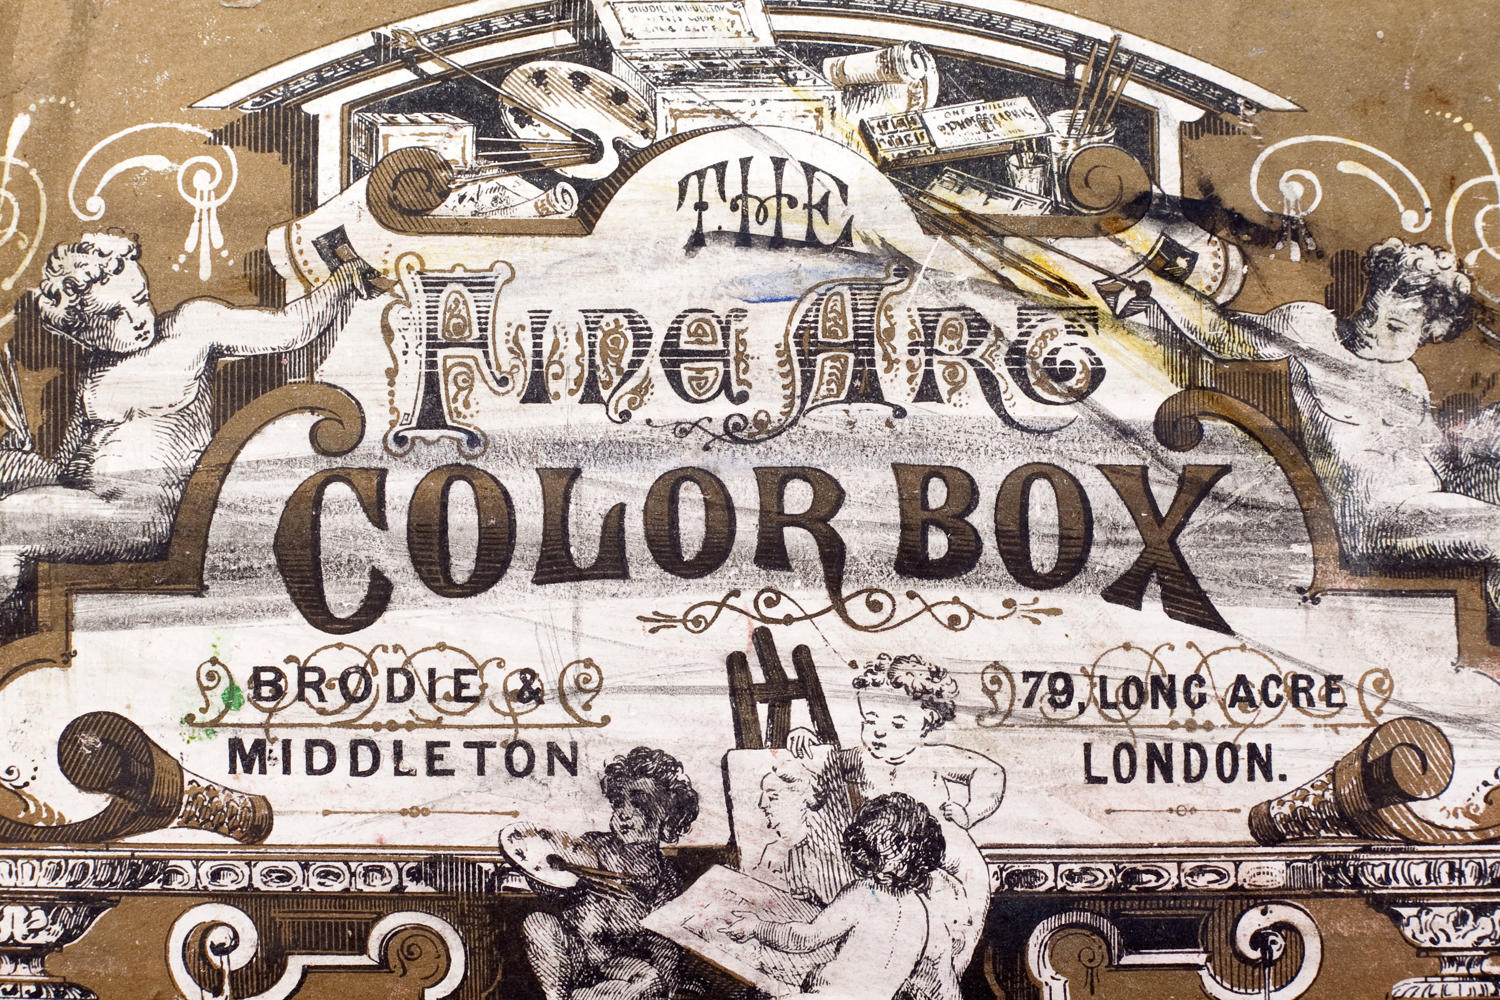 'The Fine Art Colour Box' by Brodie and Middleton